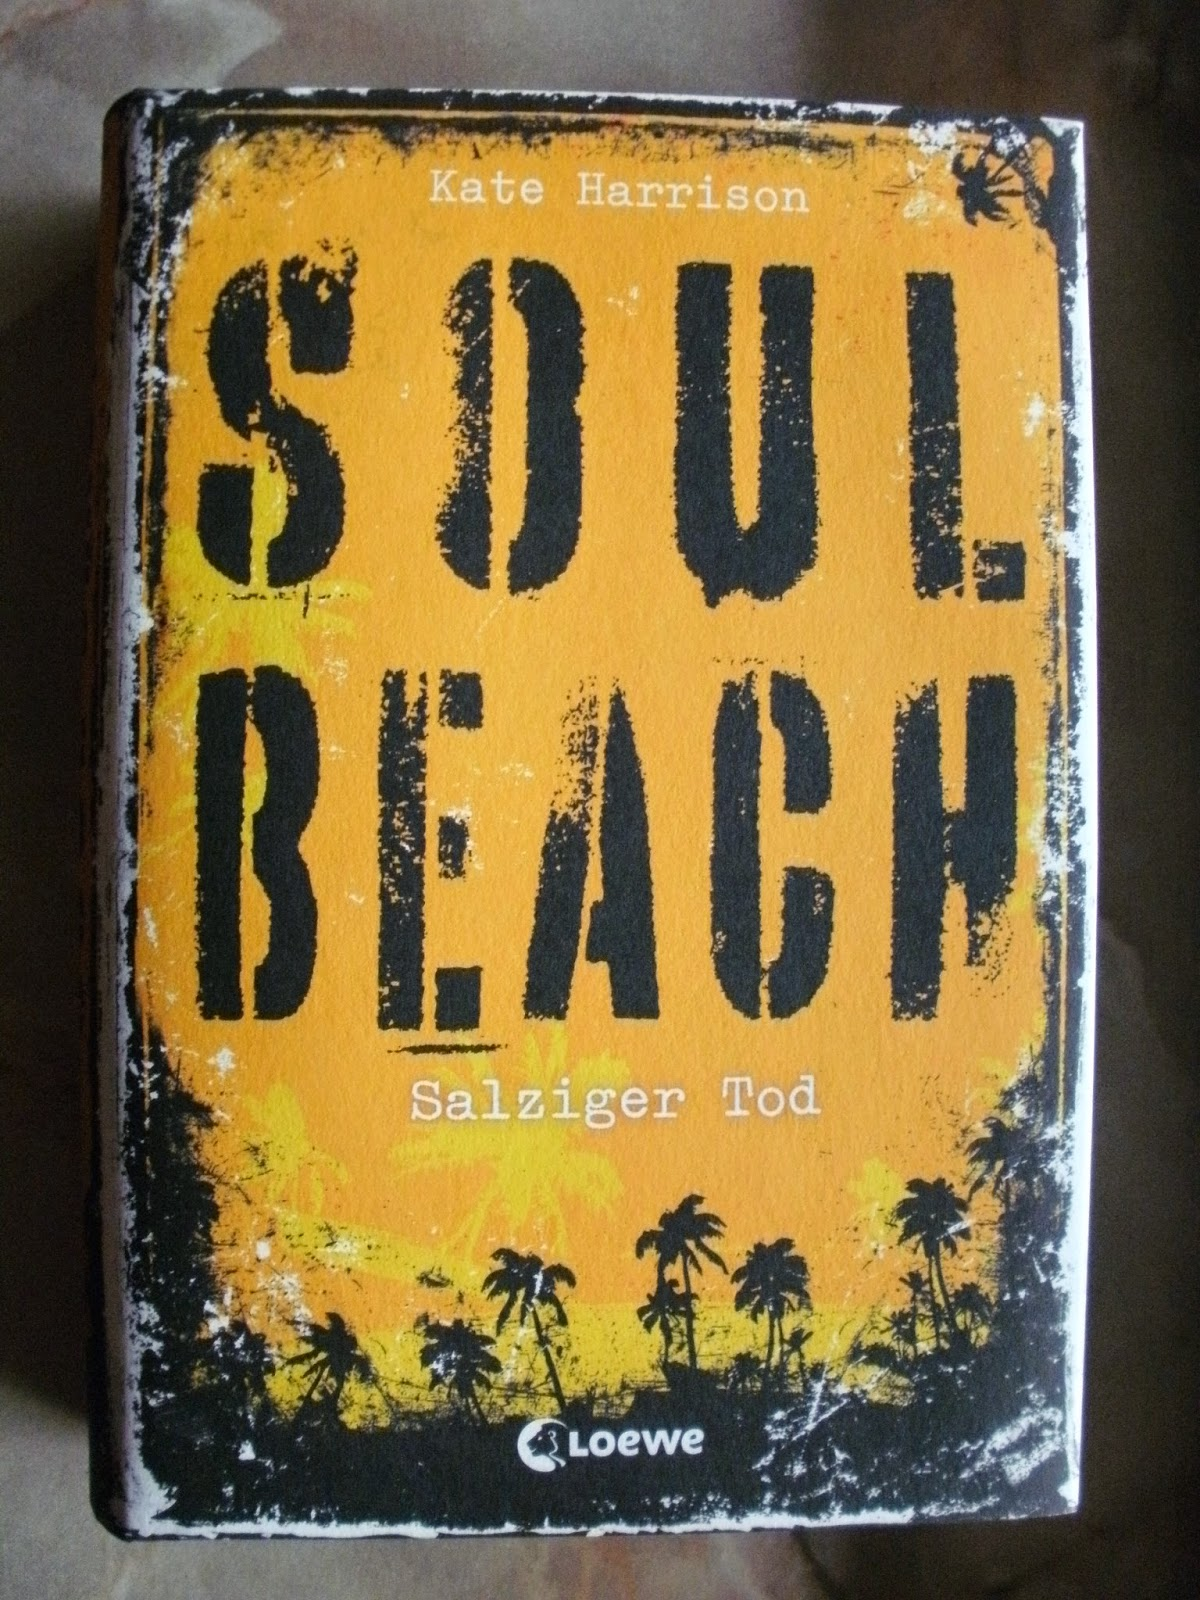 http://www.amazon.de/Soul-Beach-Salziger-Tod-Band/dp/378557388X/ref=sr_1_1?s=books&ie=UTF8&qid=1422566177&sr=1-1&keywords=Soul+beach+3